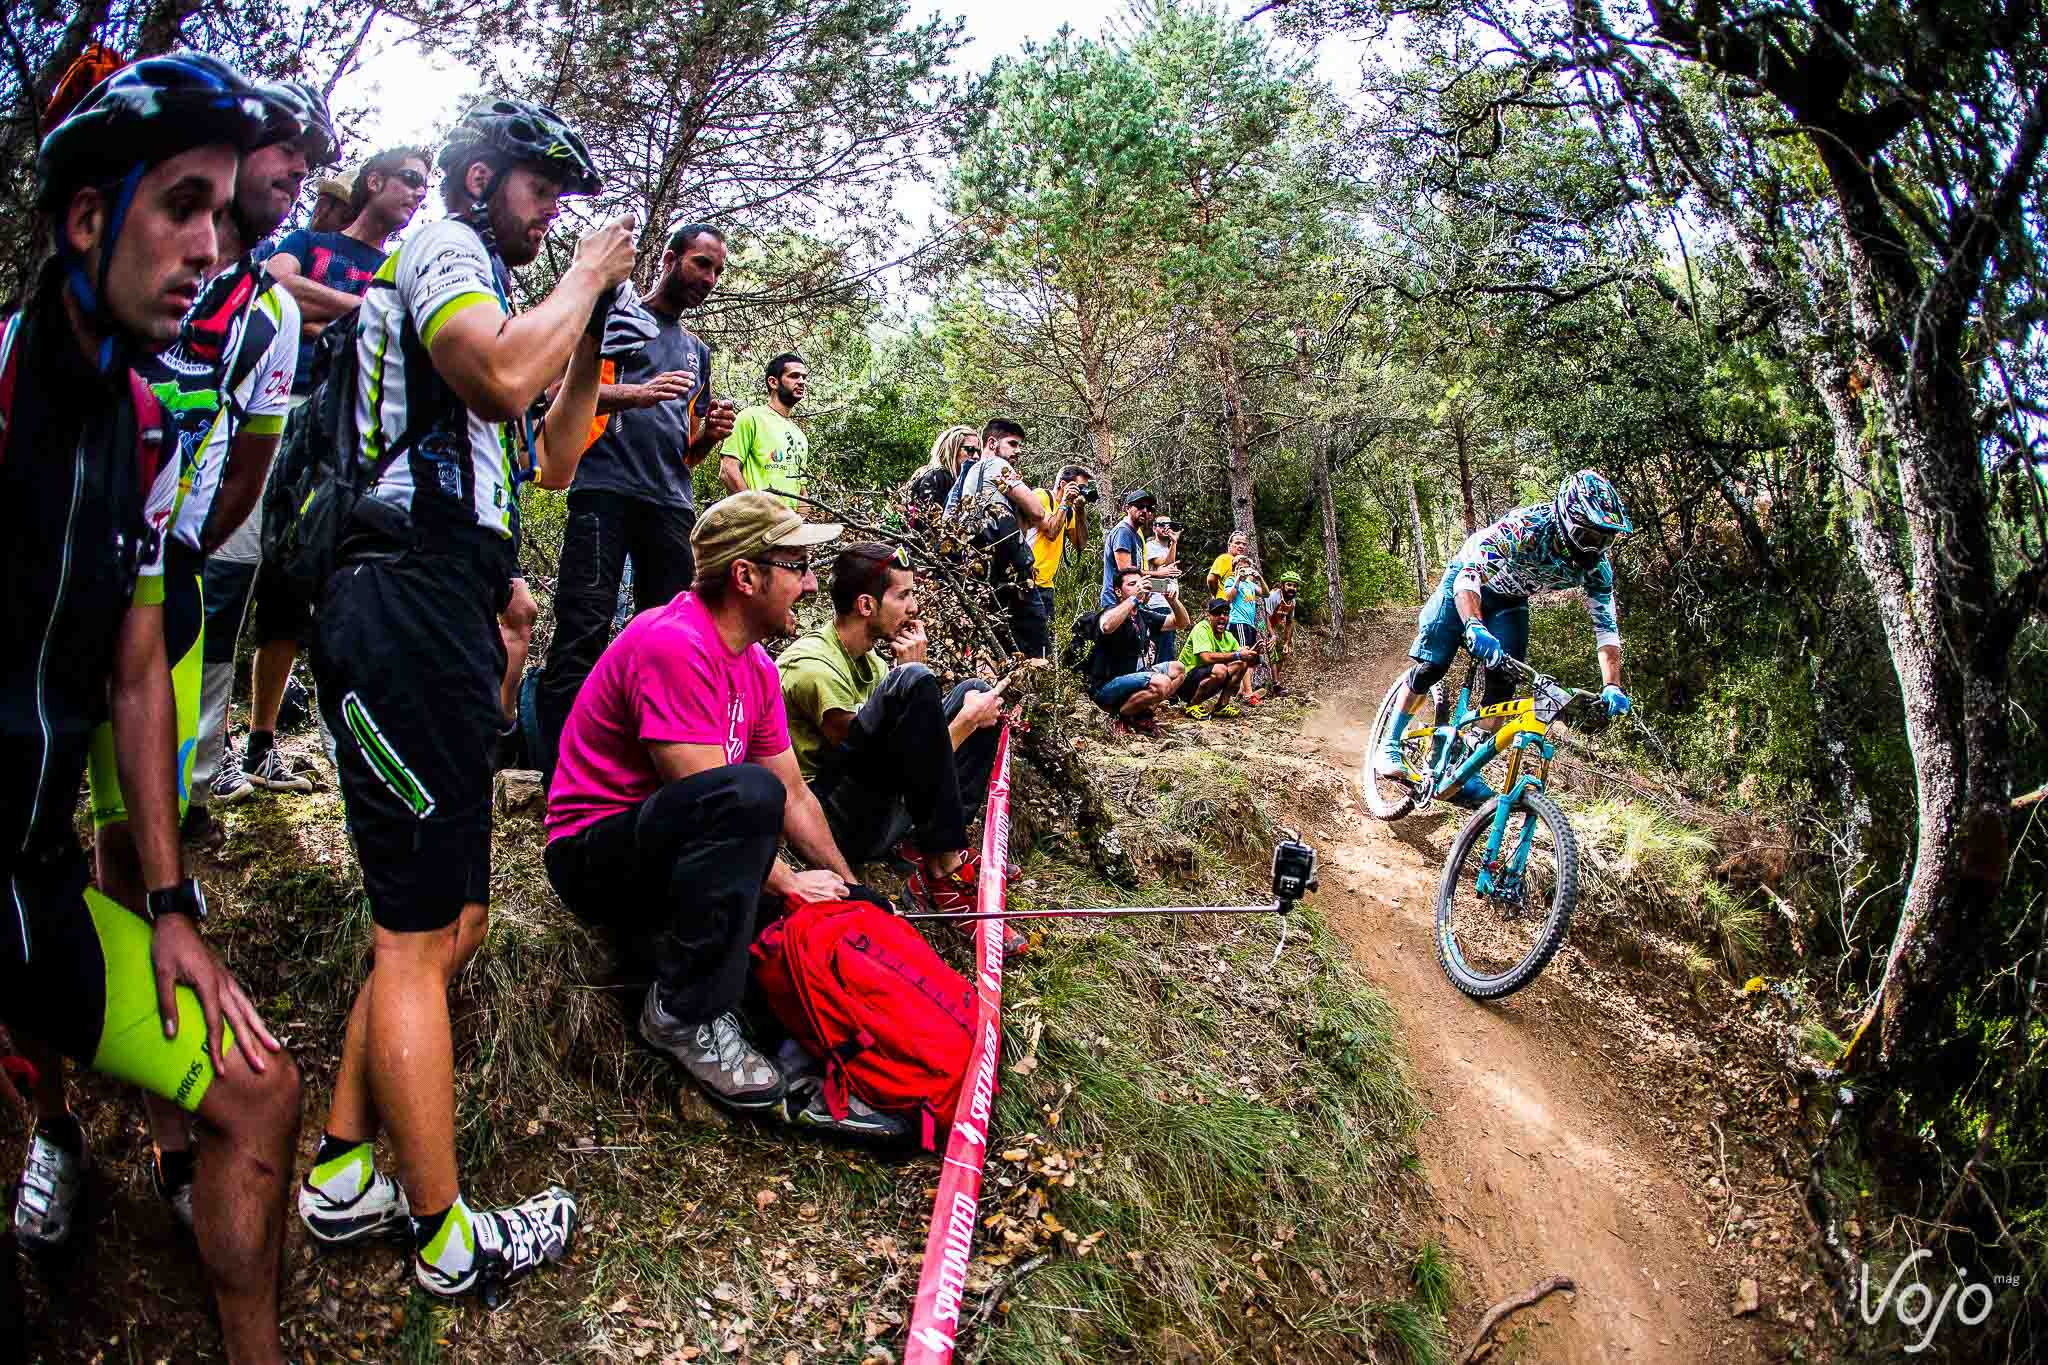 Enduro_World_Series_7_Spain_Ainsa_Zona_Zero_2015_Copyright_VojoMag-2-2